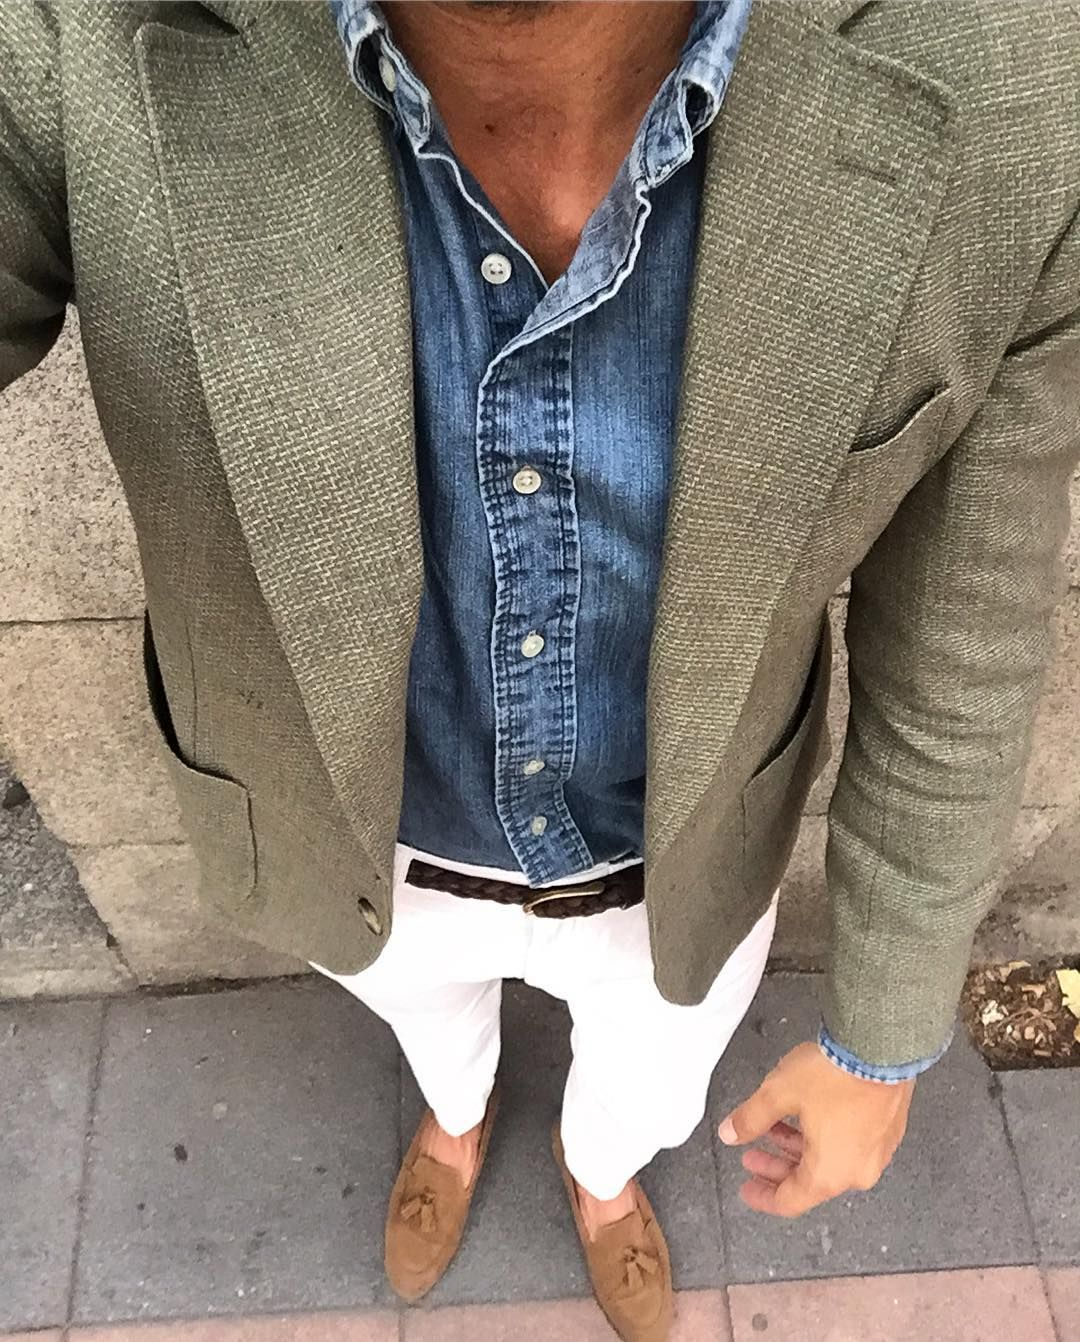 Amy liked this look on men images that amy minds us of